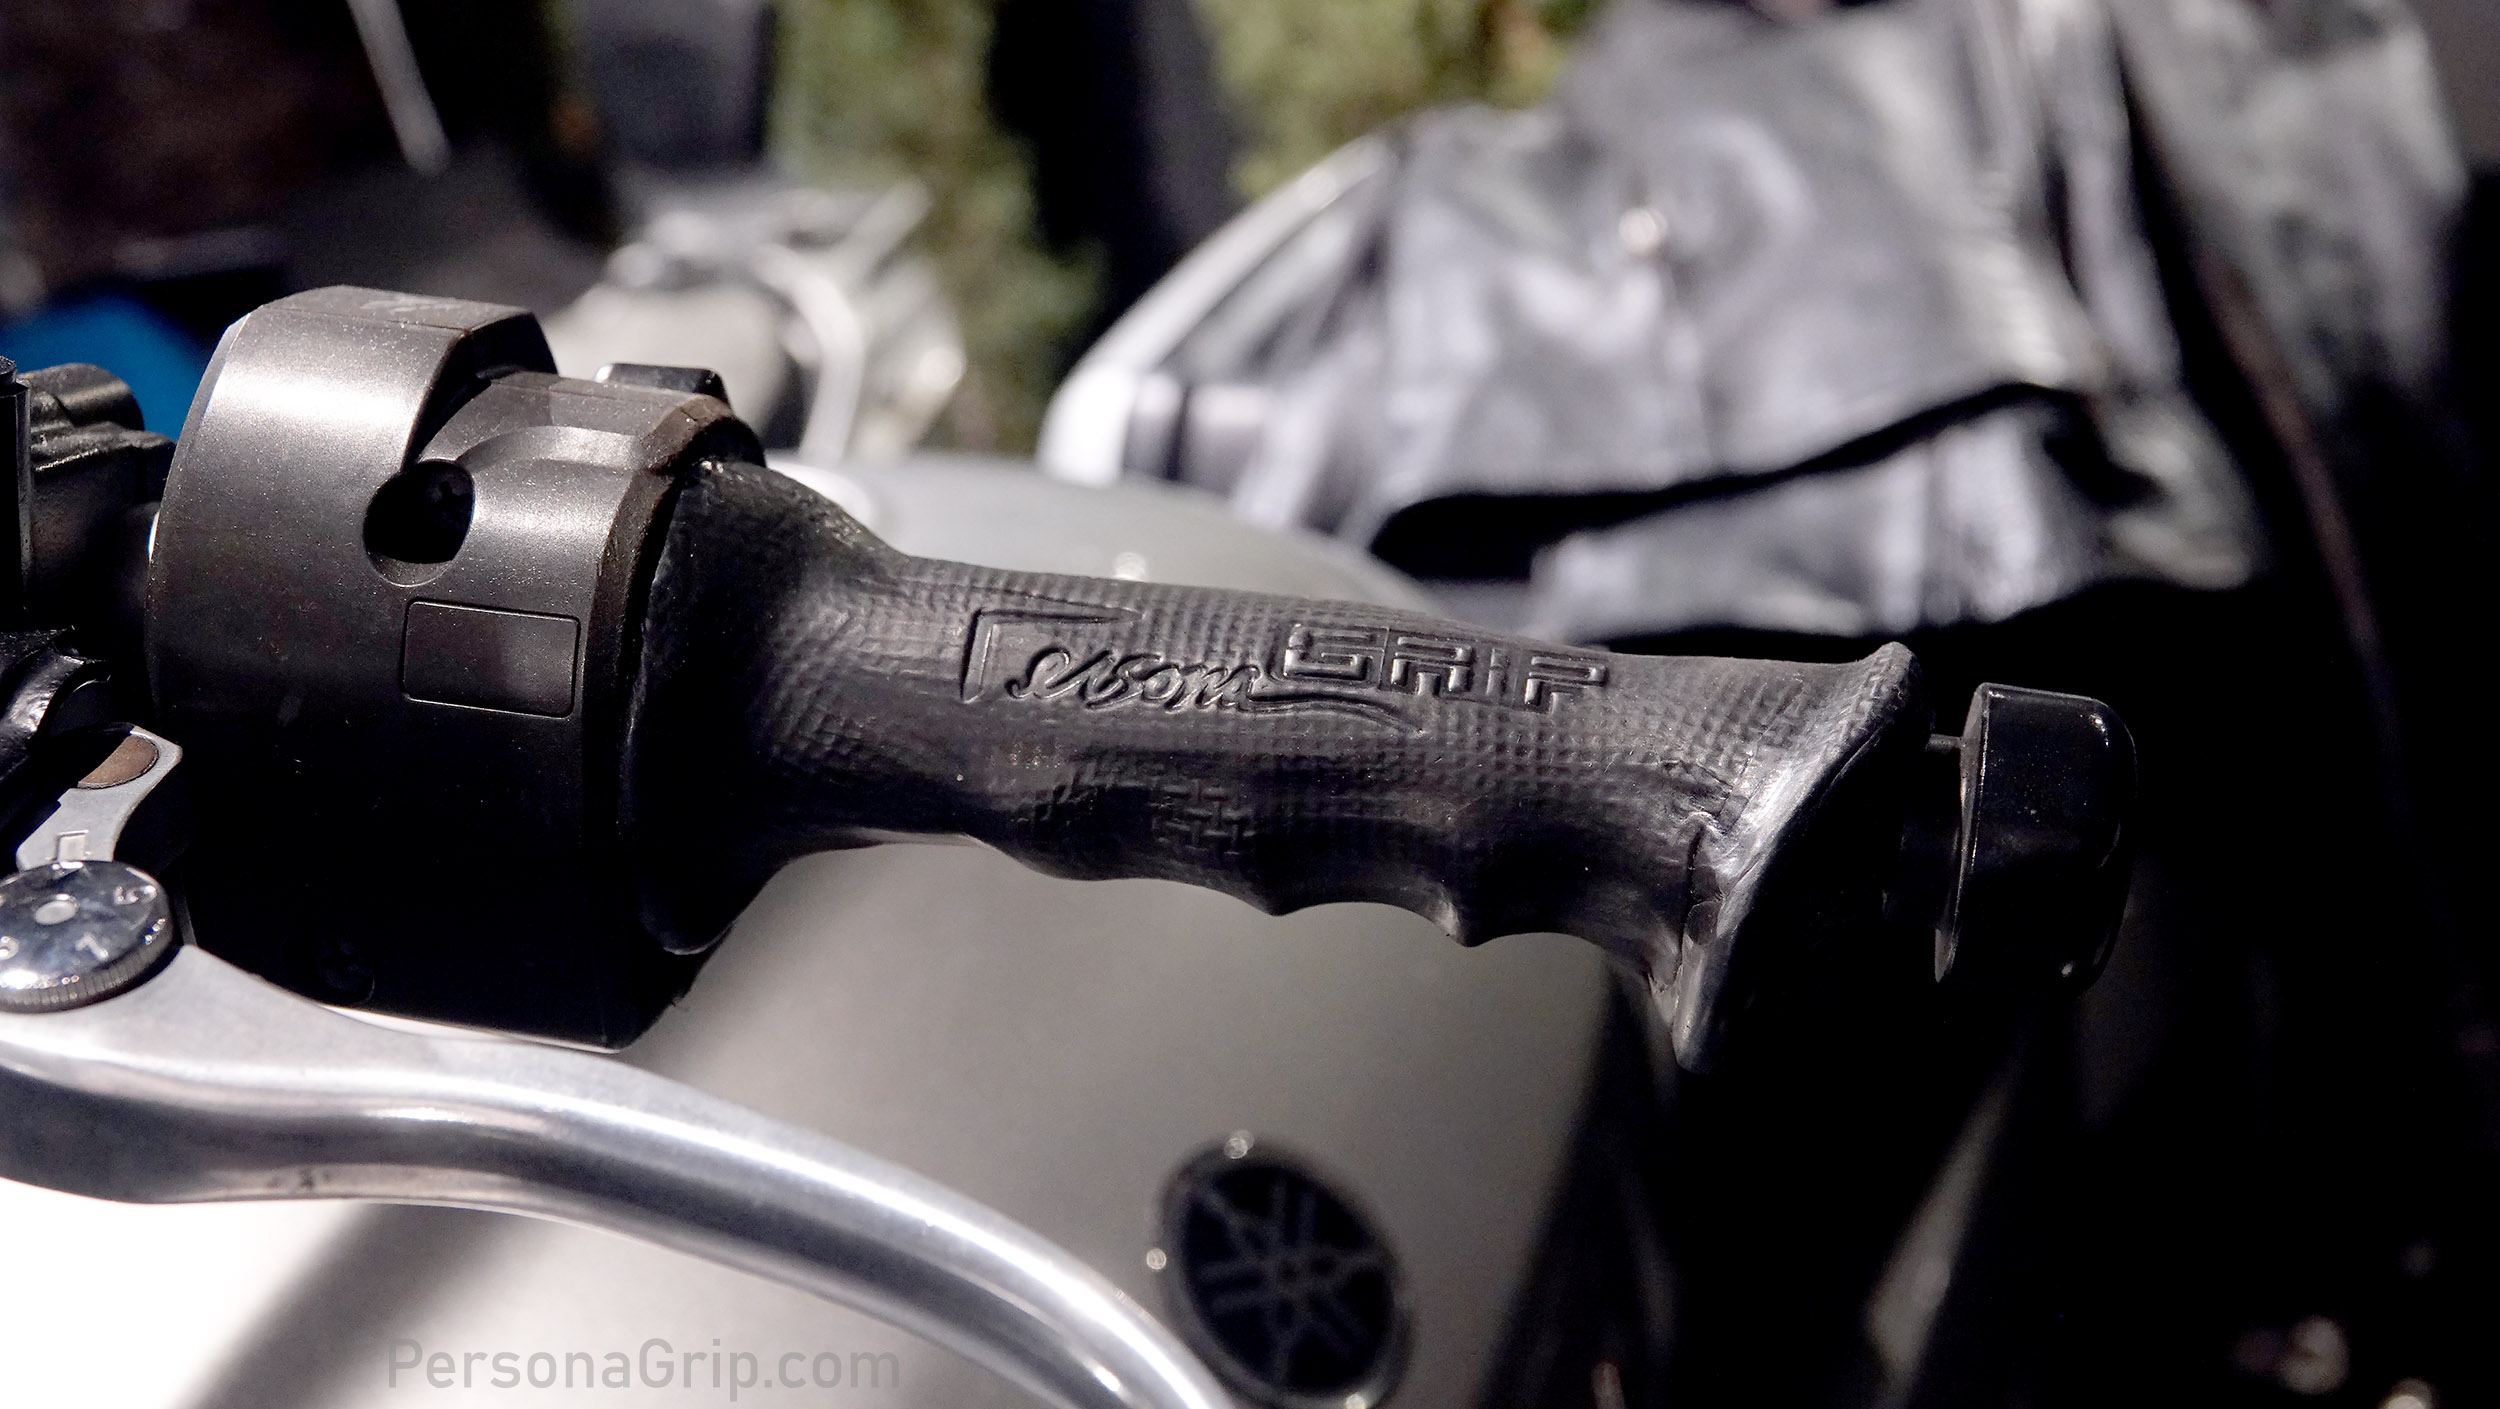 Custom Molded Hand Grips for Motorcycles